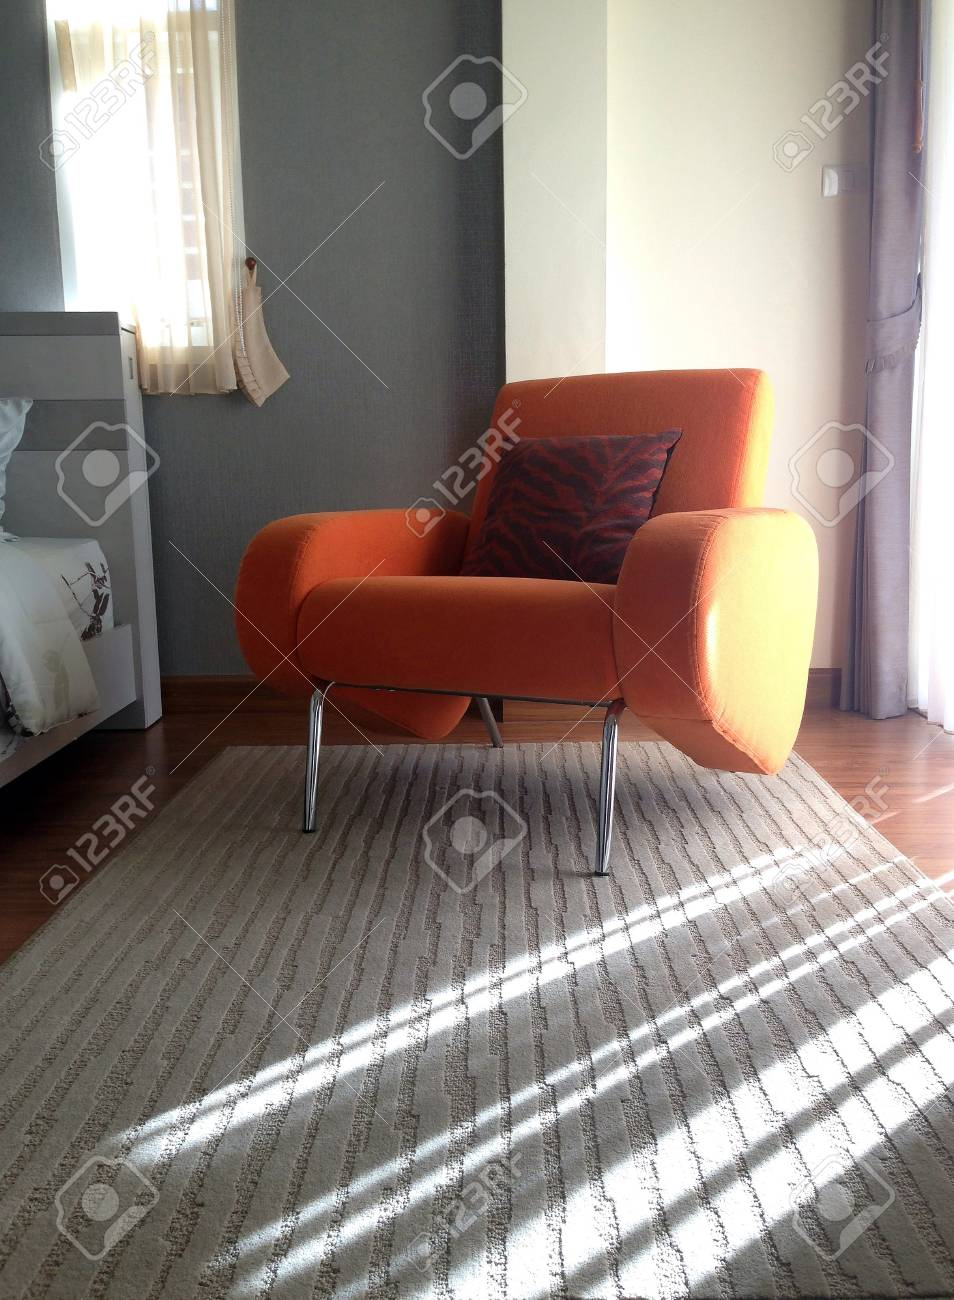 Interior, room with comfortable armchair orange Stock Photo - 23744107